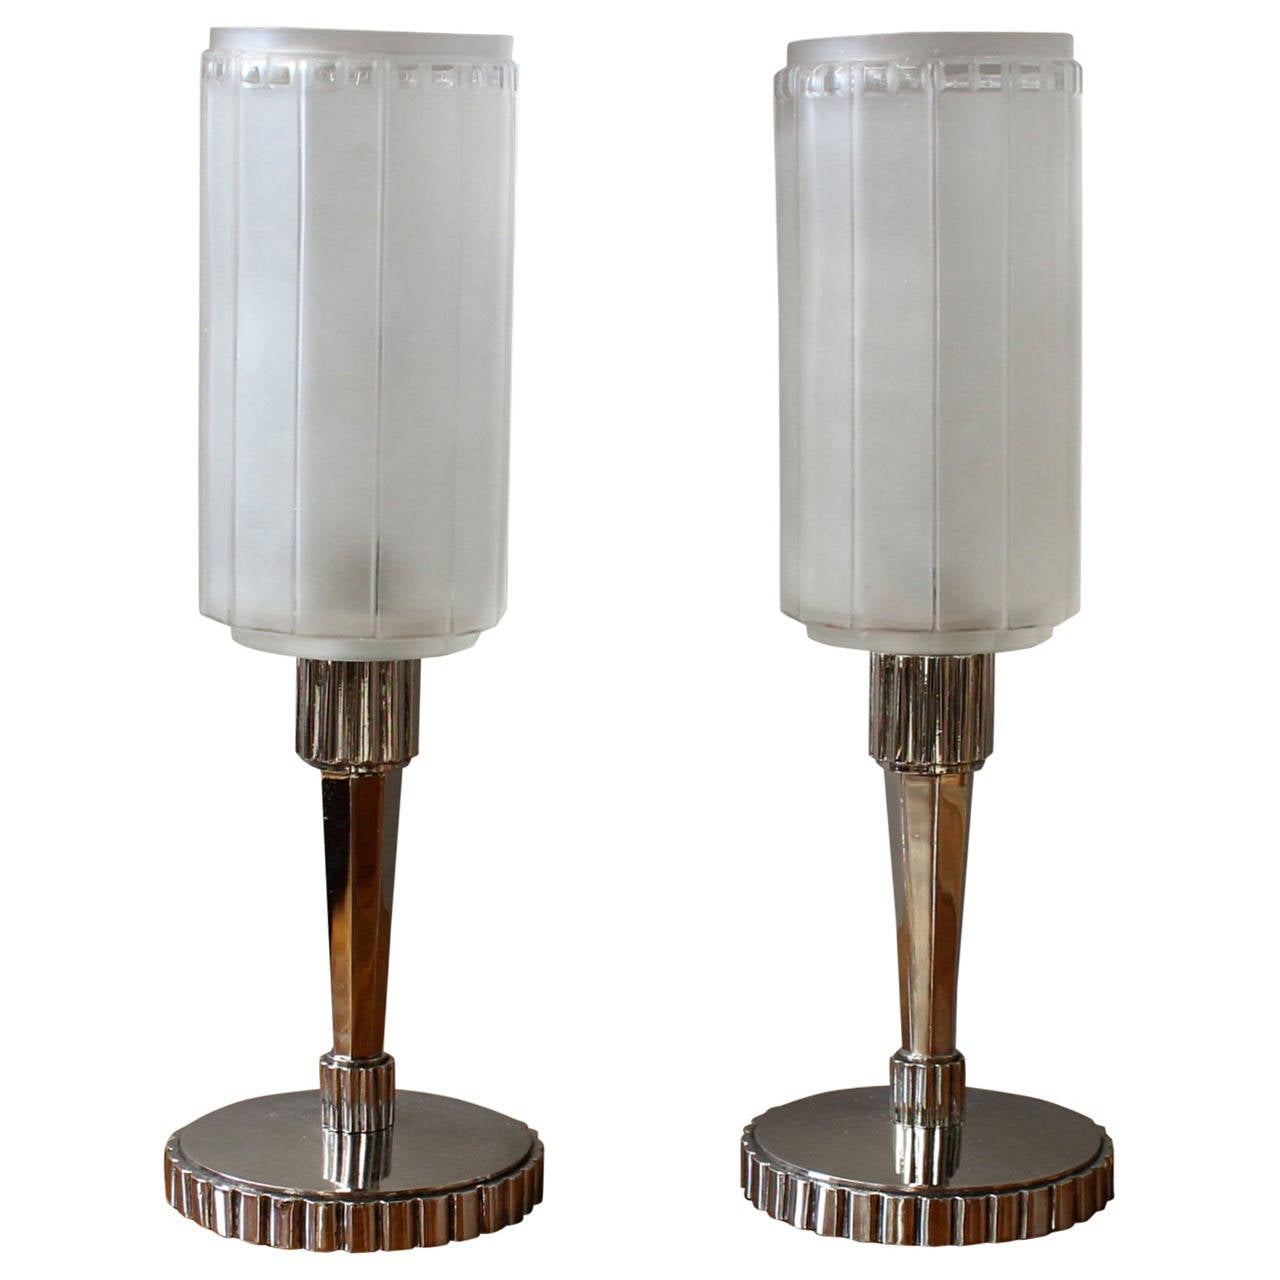 Fine Pair of French Art Deco Table Lamps by Genet et Michon